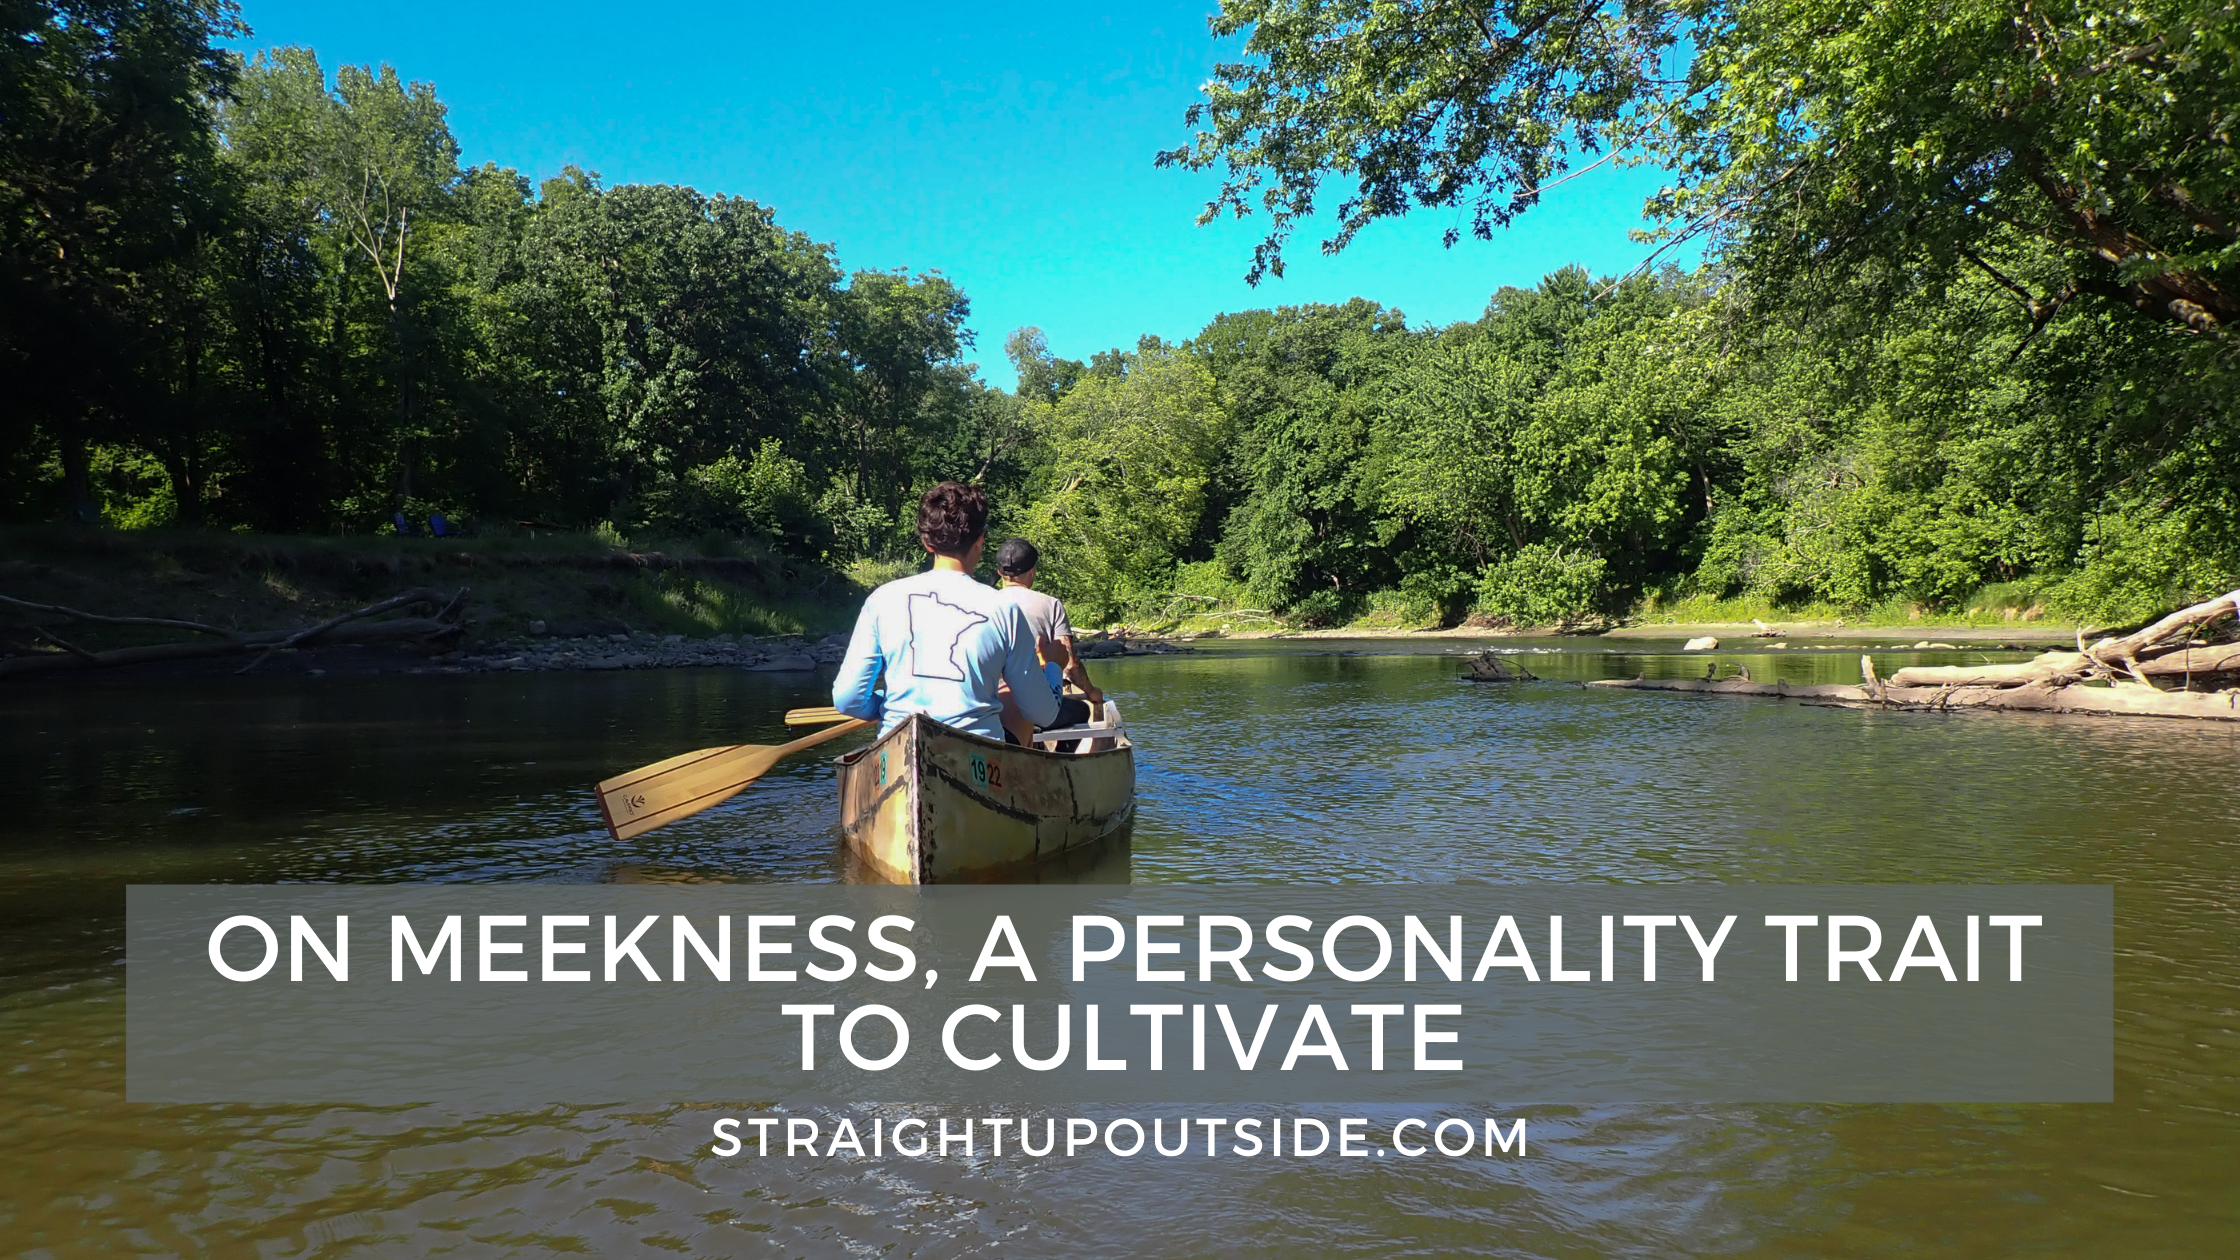 On Meekness, a Personality Trait to Cultivate